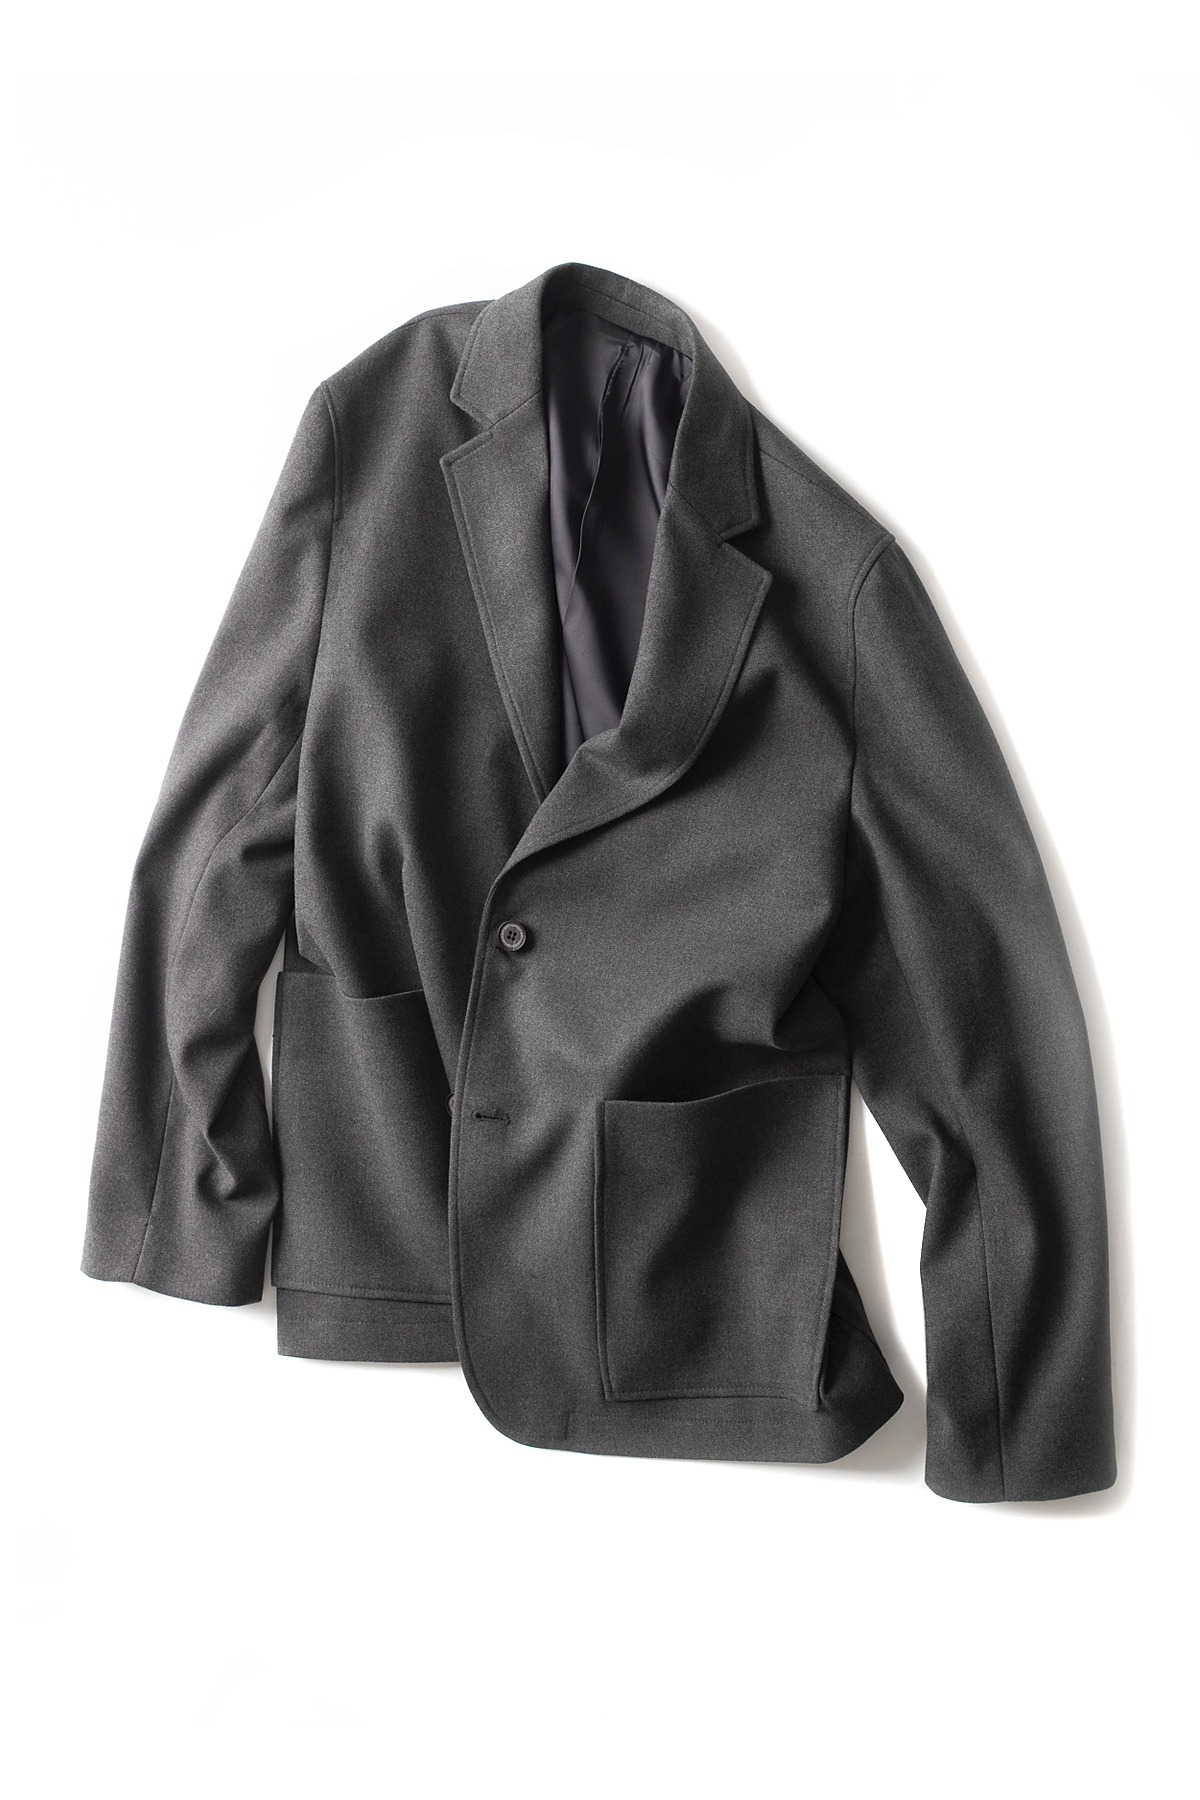 BIRTHDAYSUIT : Daily Suit Jacket (Charcoal)